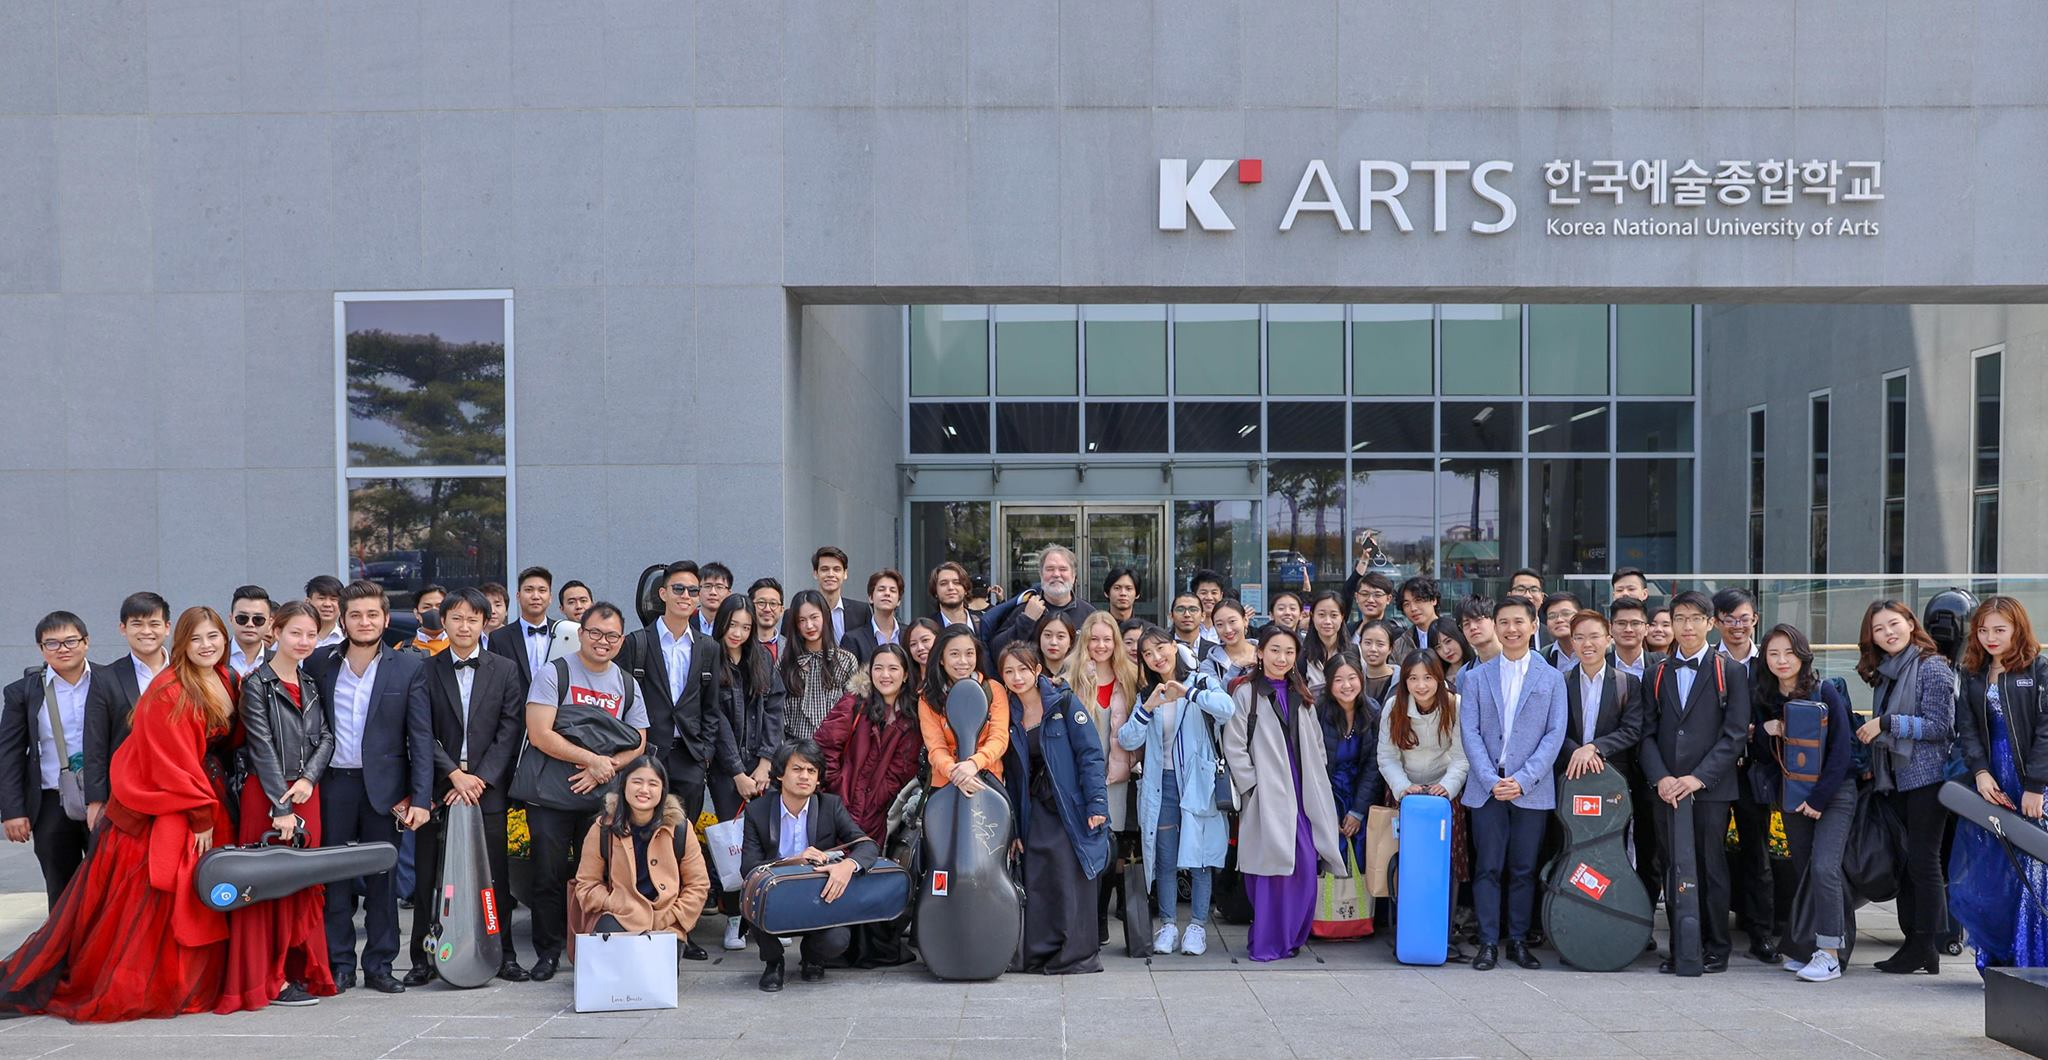 The YST Conservatory Orchestra in front of the Korea National University of Arts.